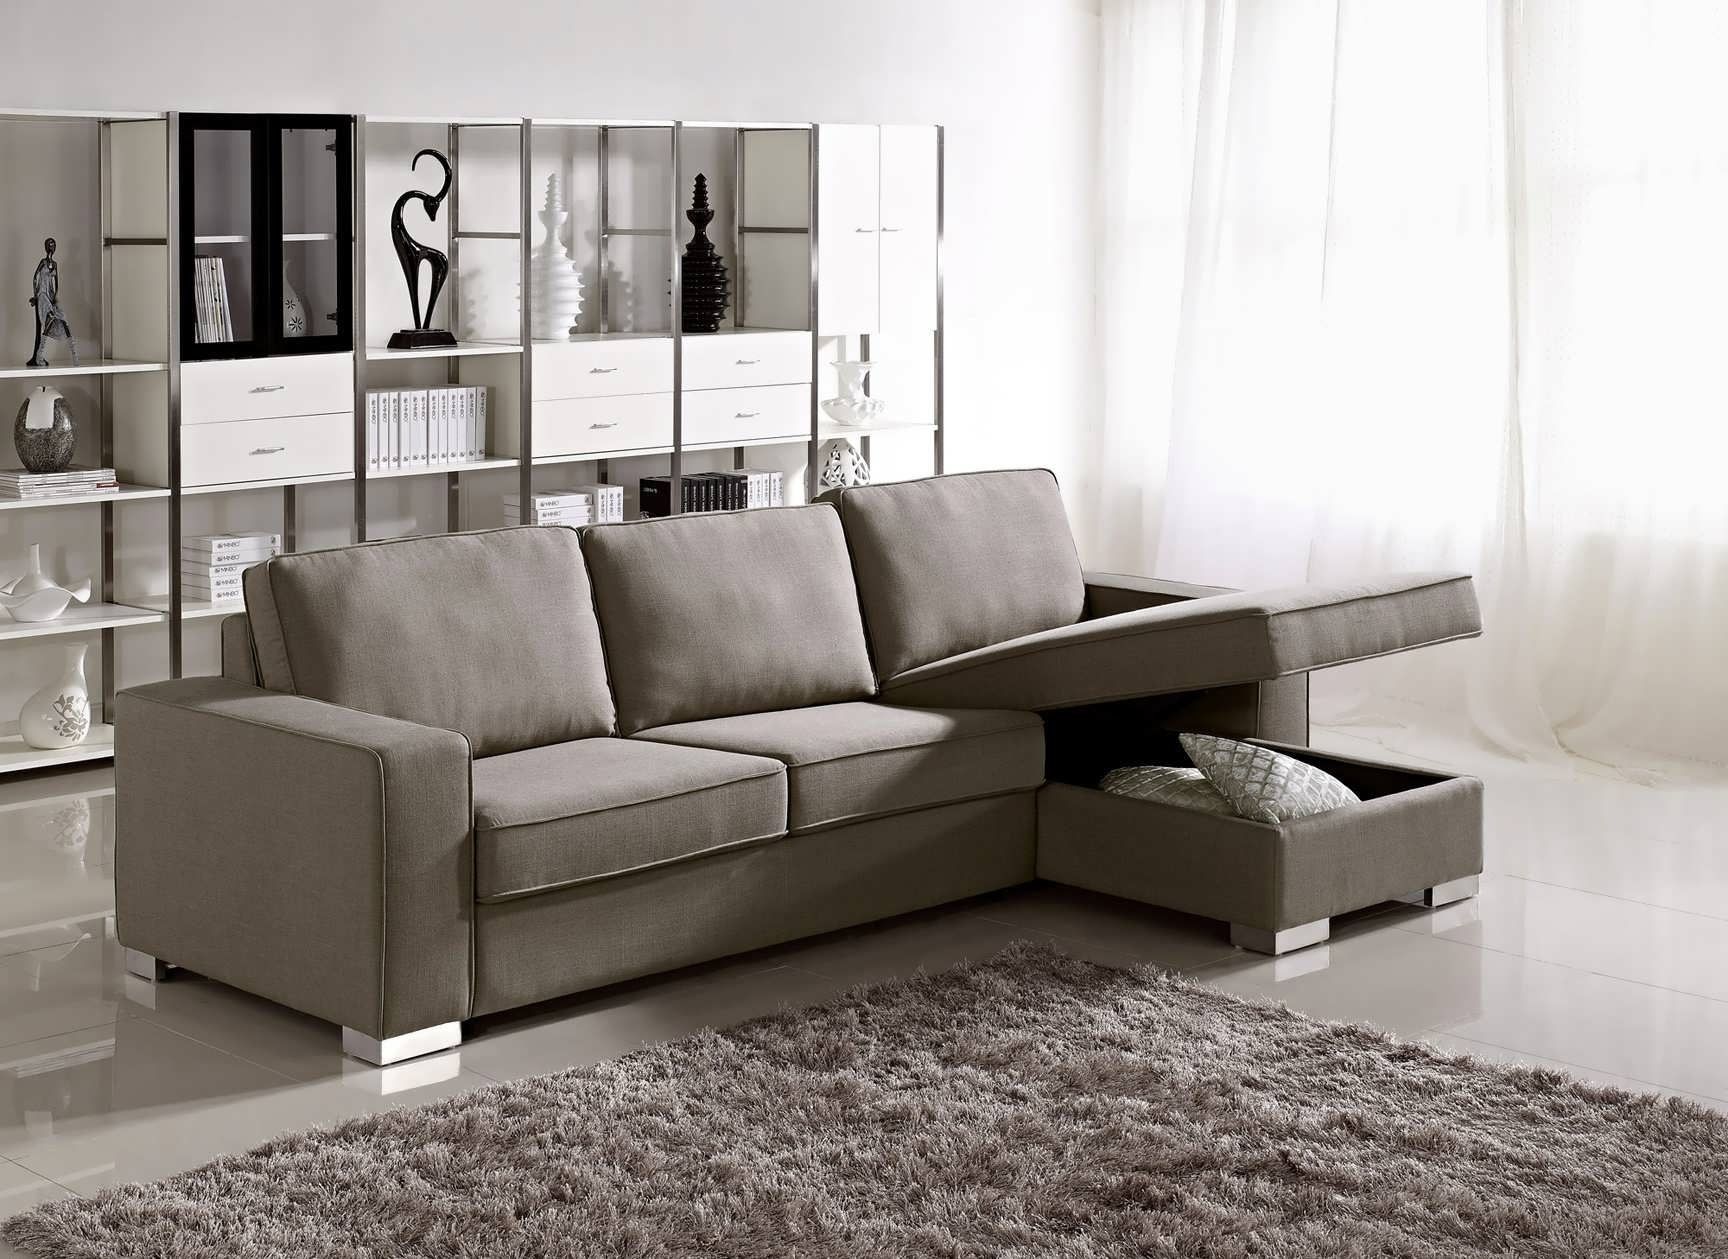 Buy Sectional Sofa Ottawa Small With Reversible Chaise Canada Sofas Within Sectional Sofas At Bc Canada (Image 1 of 10)